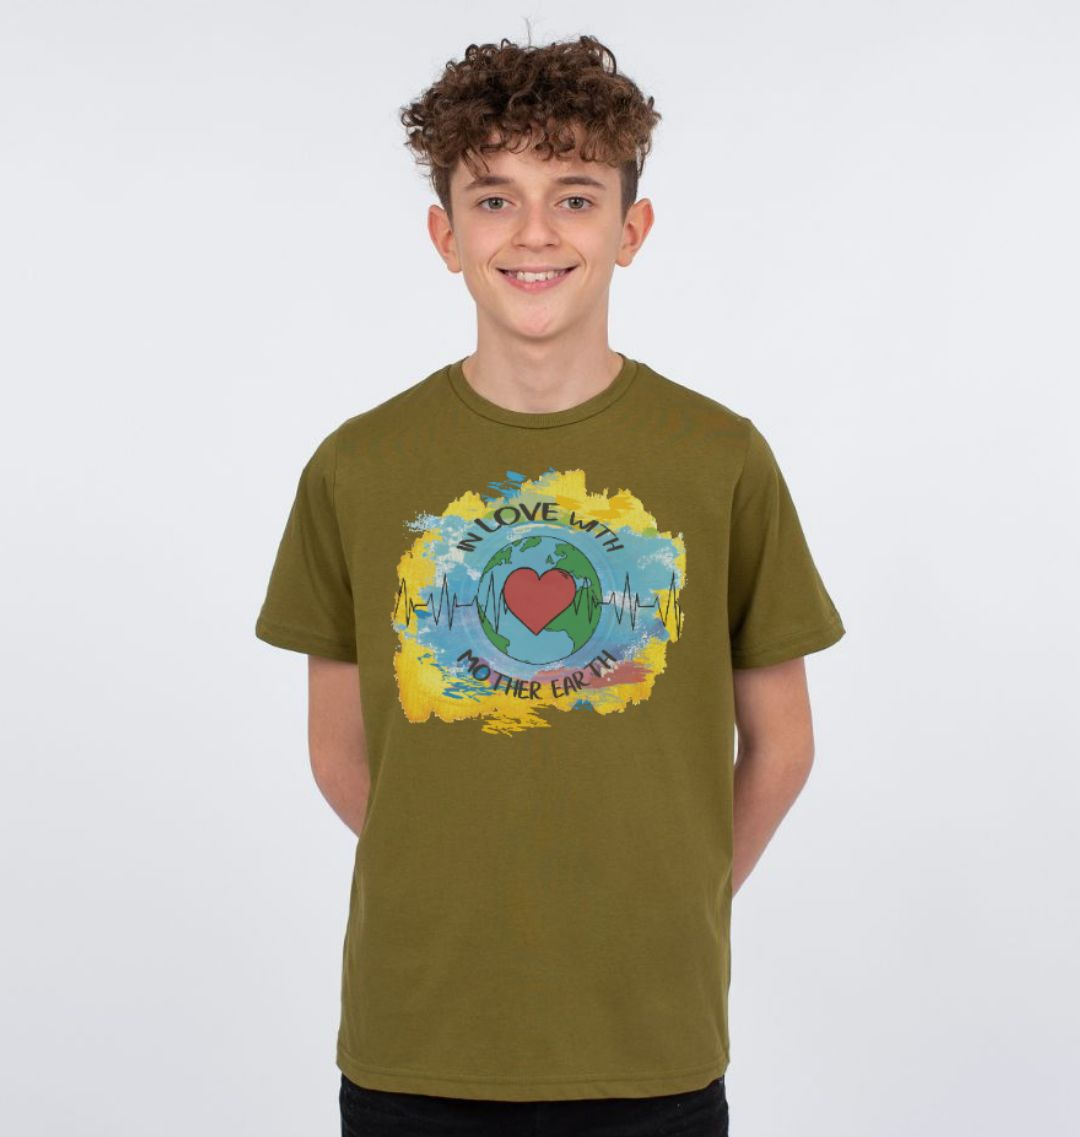 Children's Climate T Shirt 'In Love With Mother Earth' Soft Organic Cotton moss green